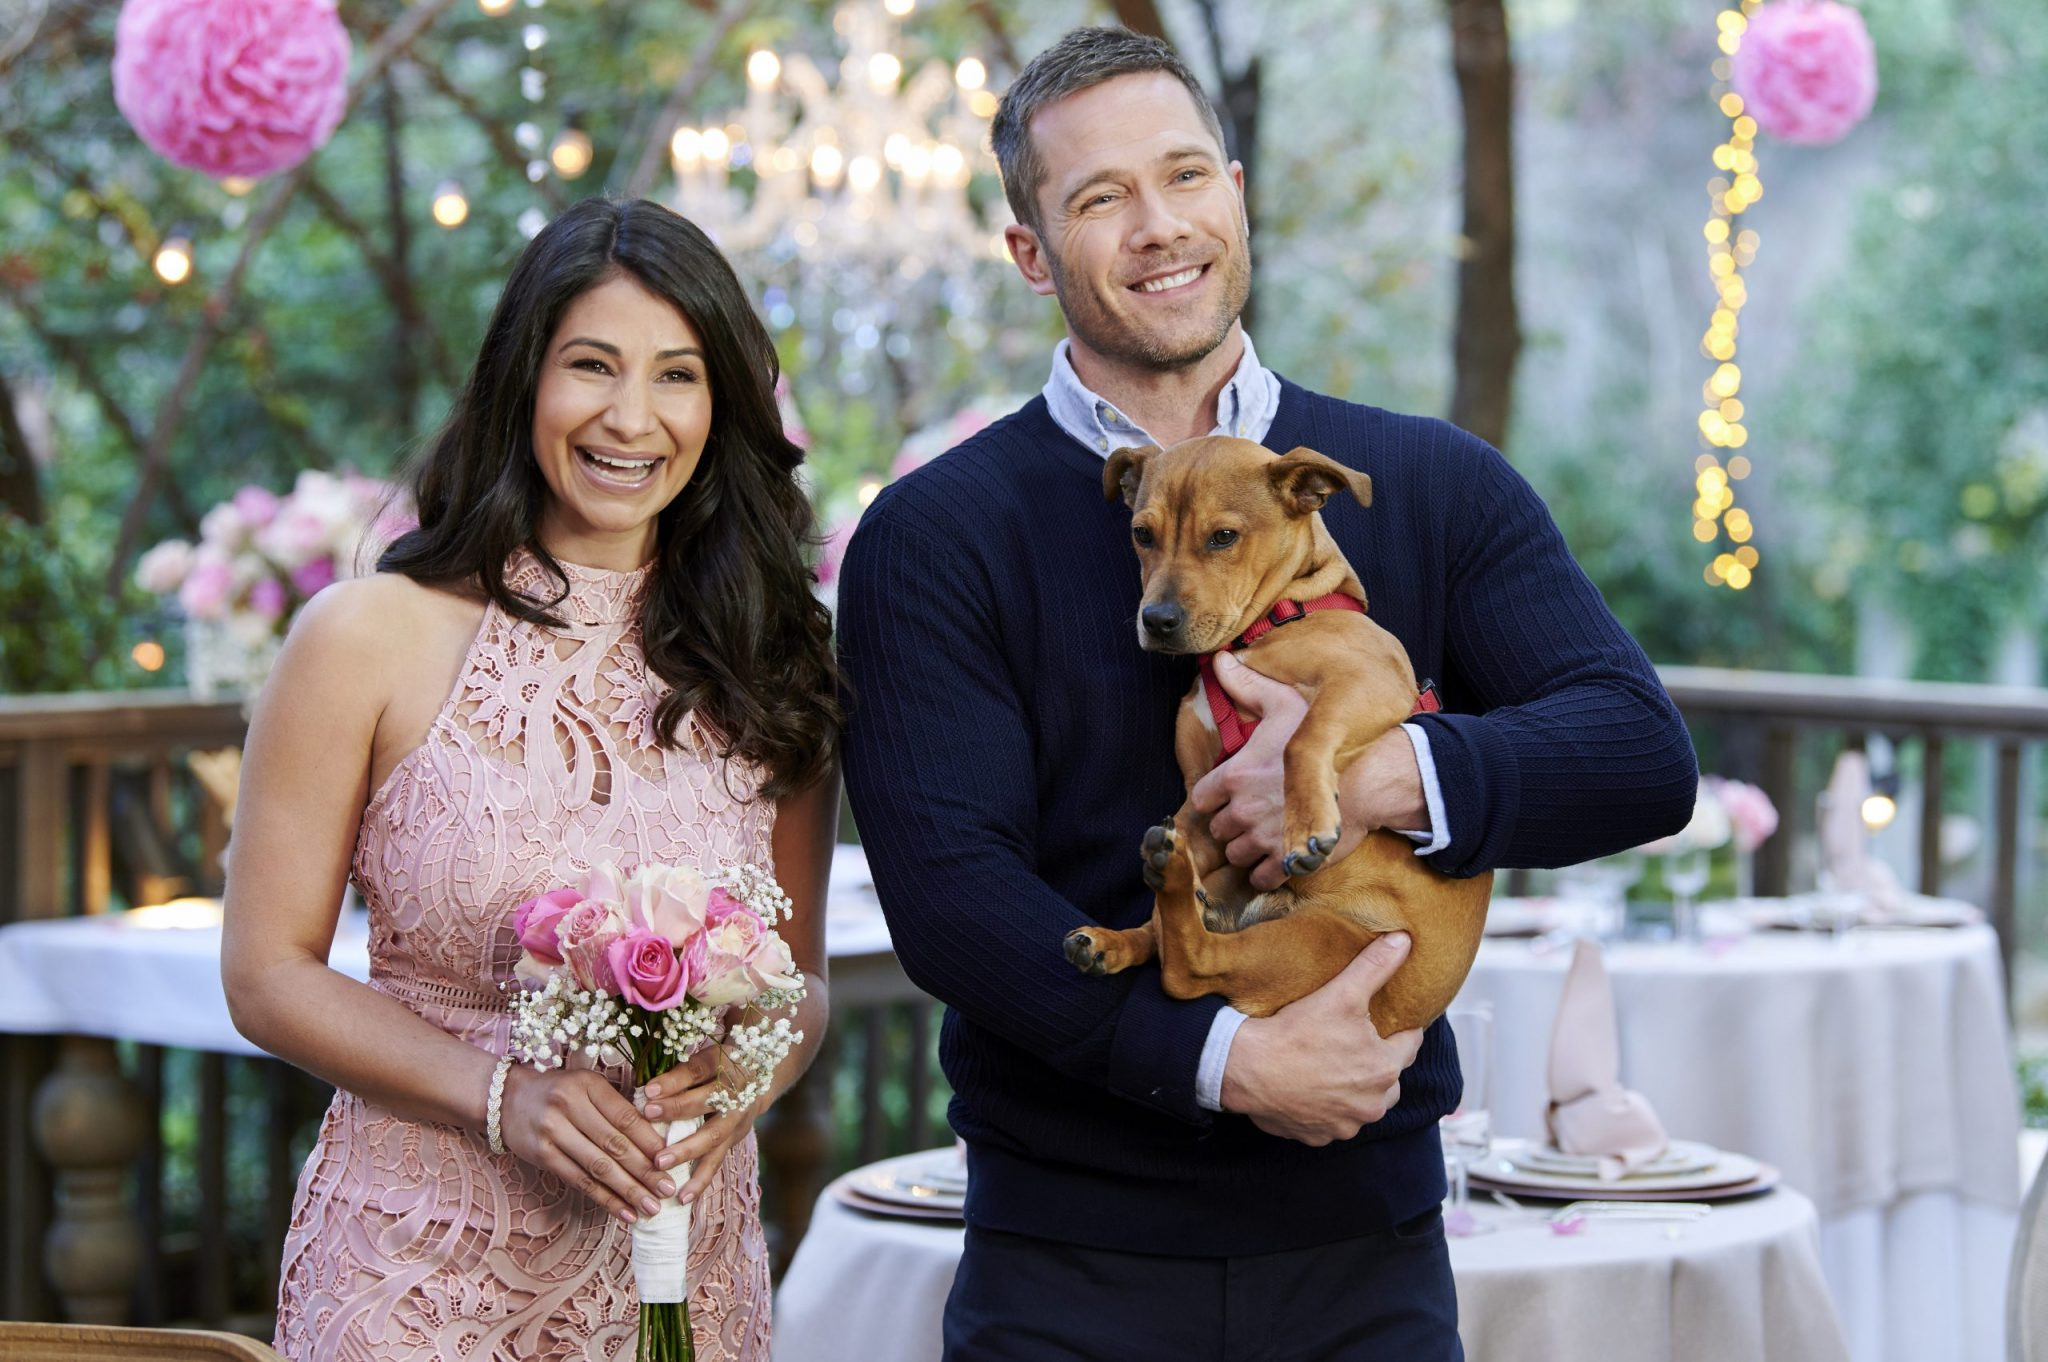 A sneak peek at our Love Ever After original movies plus Hallmark Channel's upcoming Cat Bowl II, Kitten Bowl VII, and the 2020 American Rescue Dog Show. Photo: Larissa Wohl, Luke Macfarlane Credit: ©2020 Crown Media United States LLC/Photographer: Alexx Henry/Alexx Henry Studios, LLC